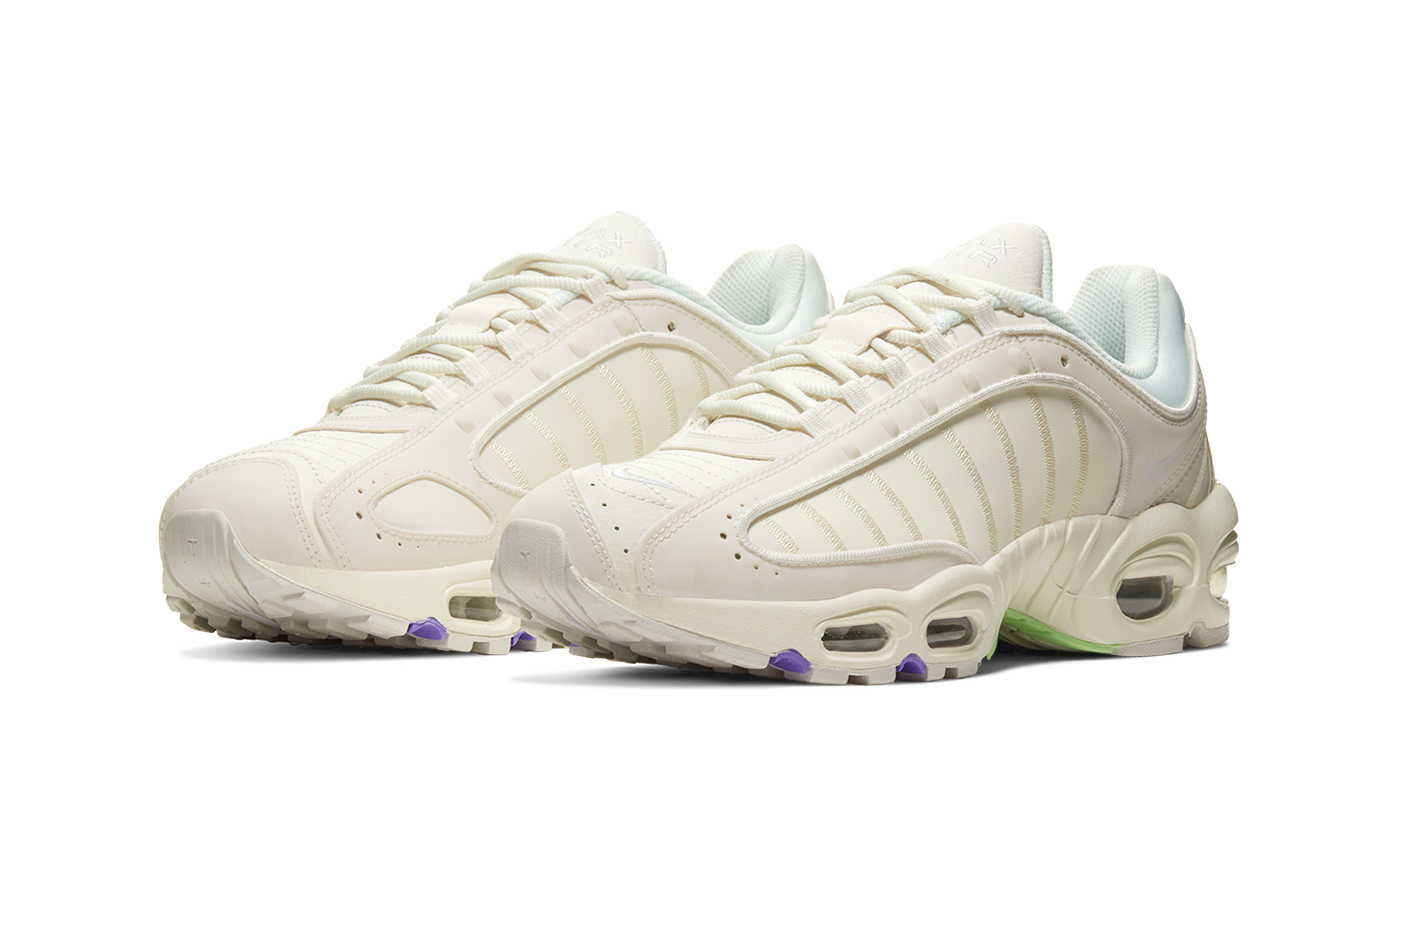 Nike Air Max Tailwind IV 99 Reflective SP Release  Cq6569-100 air max nike shoes kicks sneakers footwear SNS